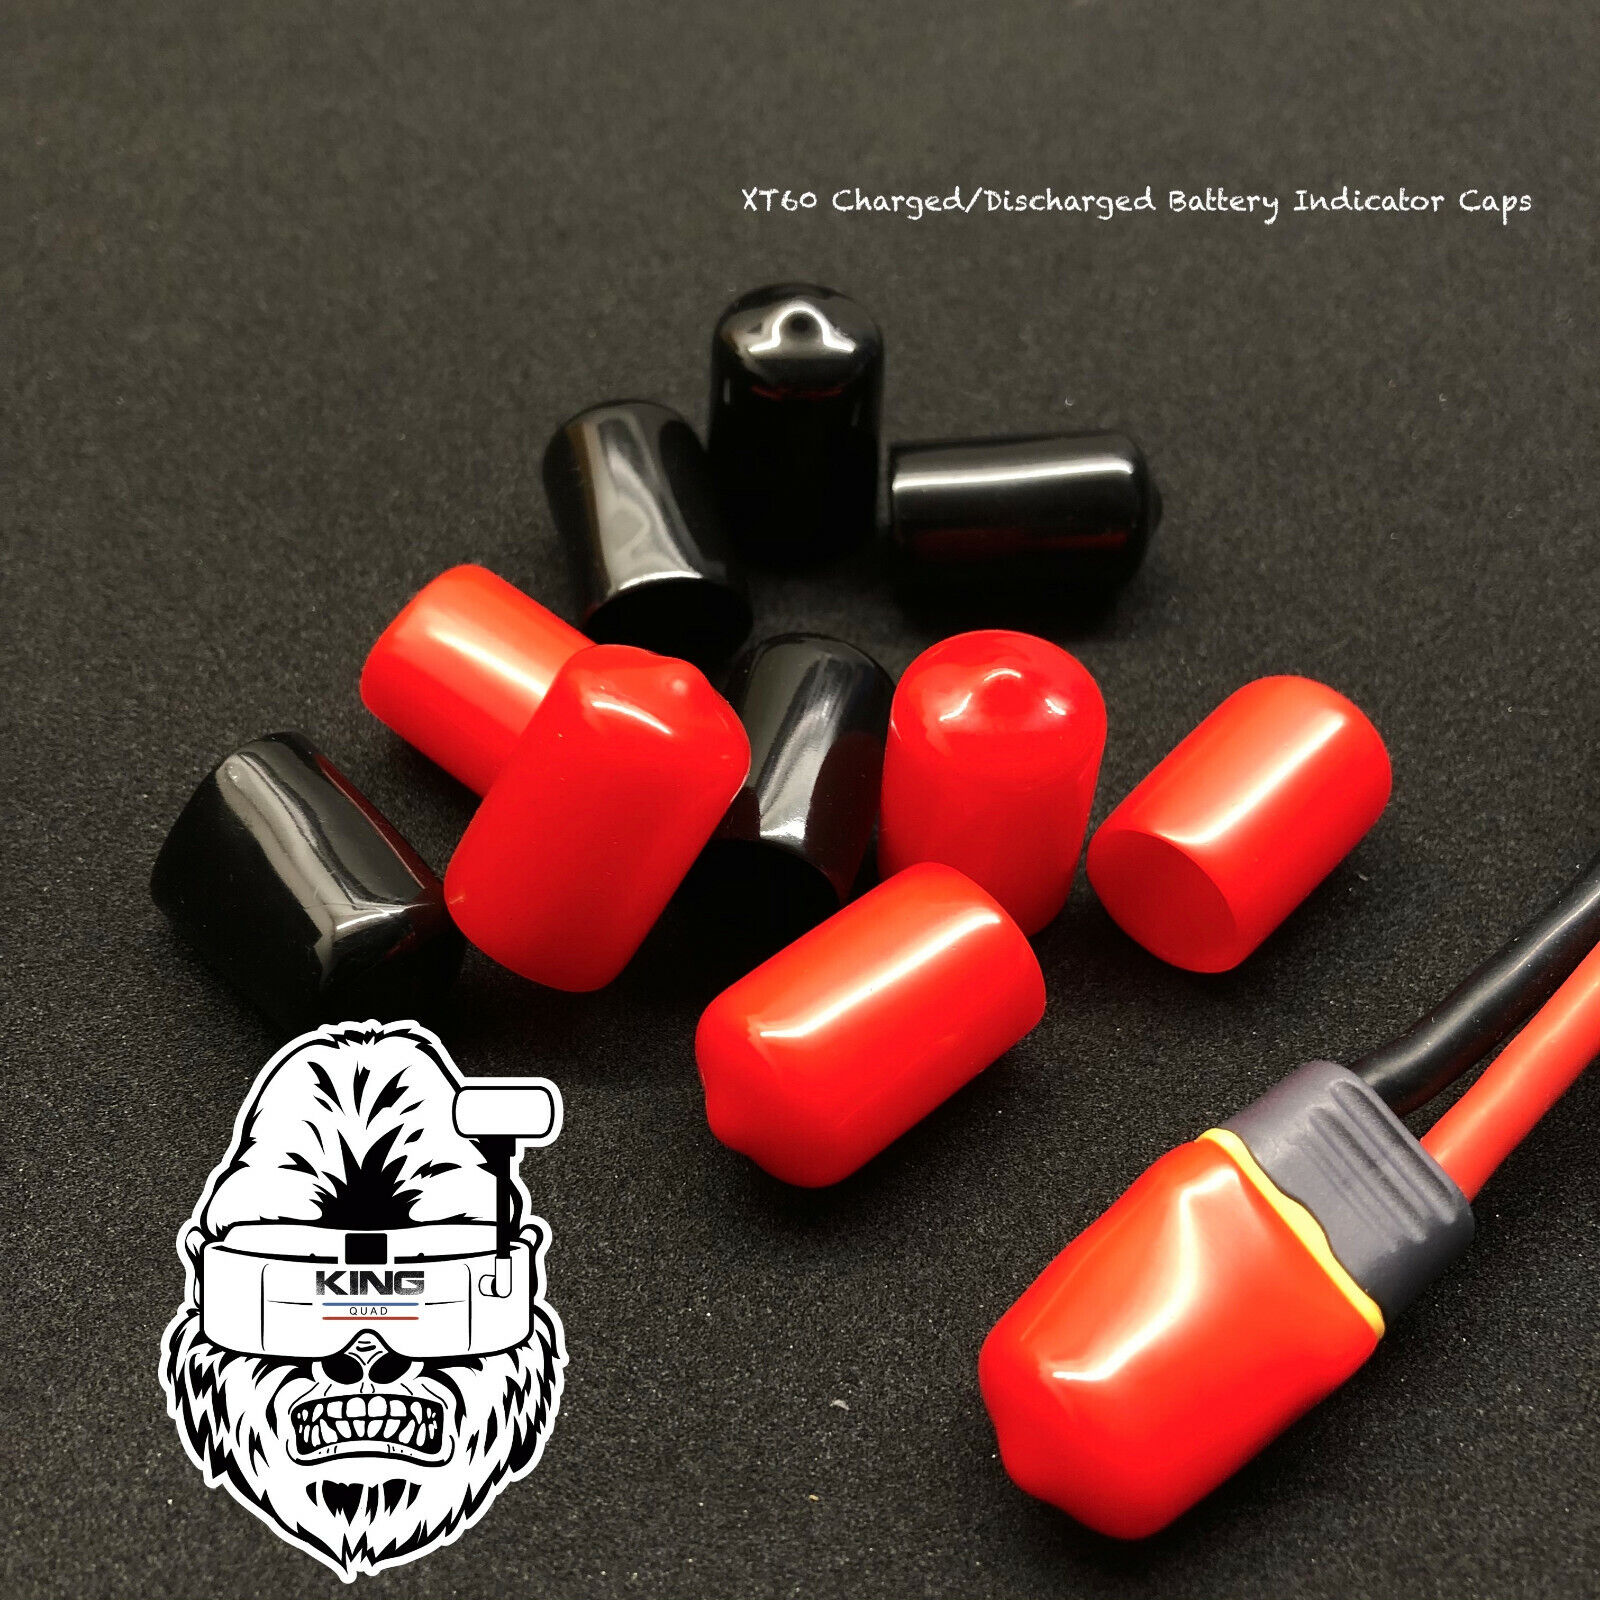 XT60 Charged/Discharged Battery Indicator Caps (Black/Red)